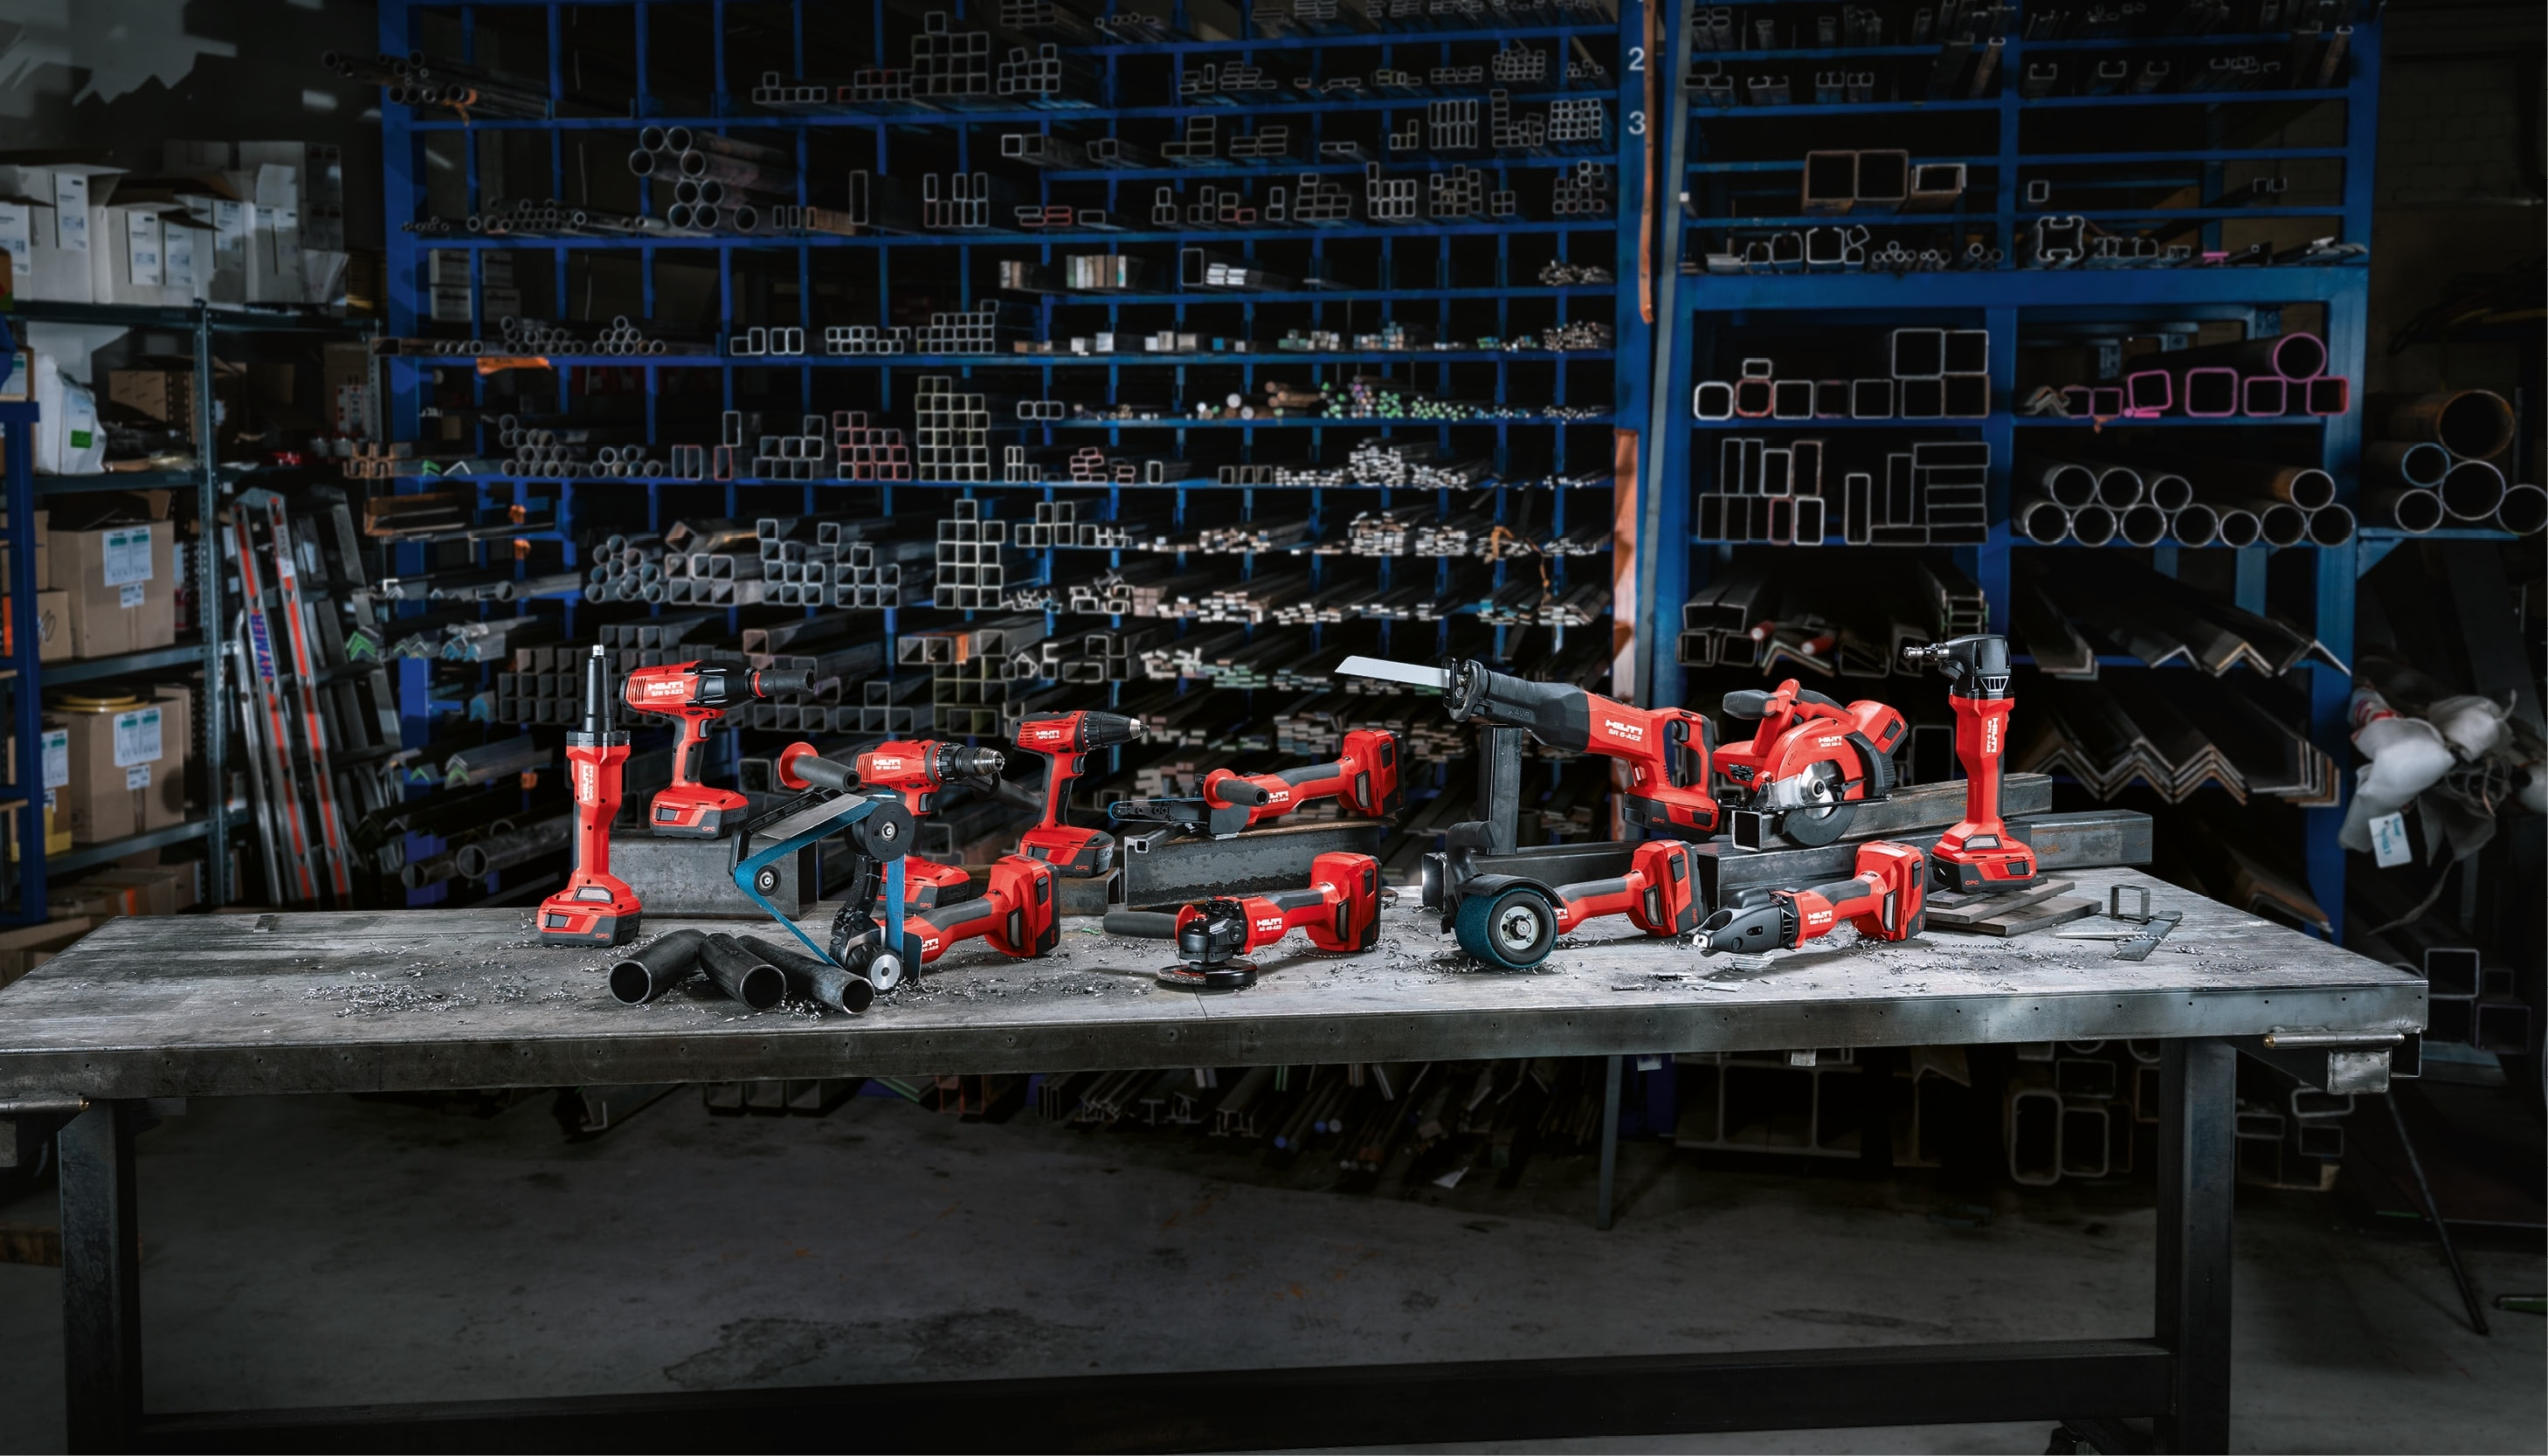 The Hilti range of cordless tools for metal fabrication.